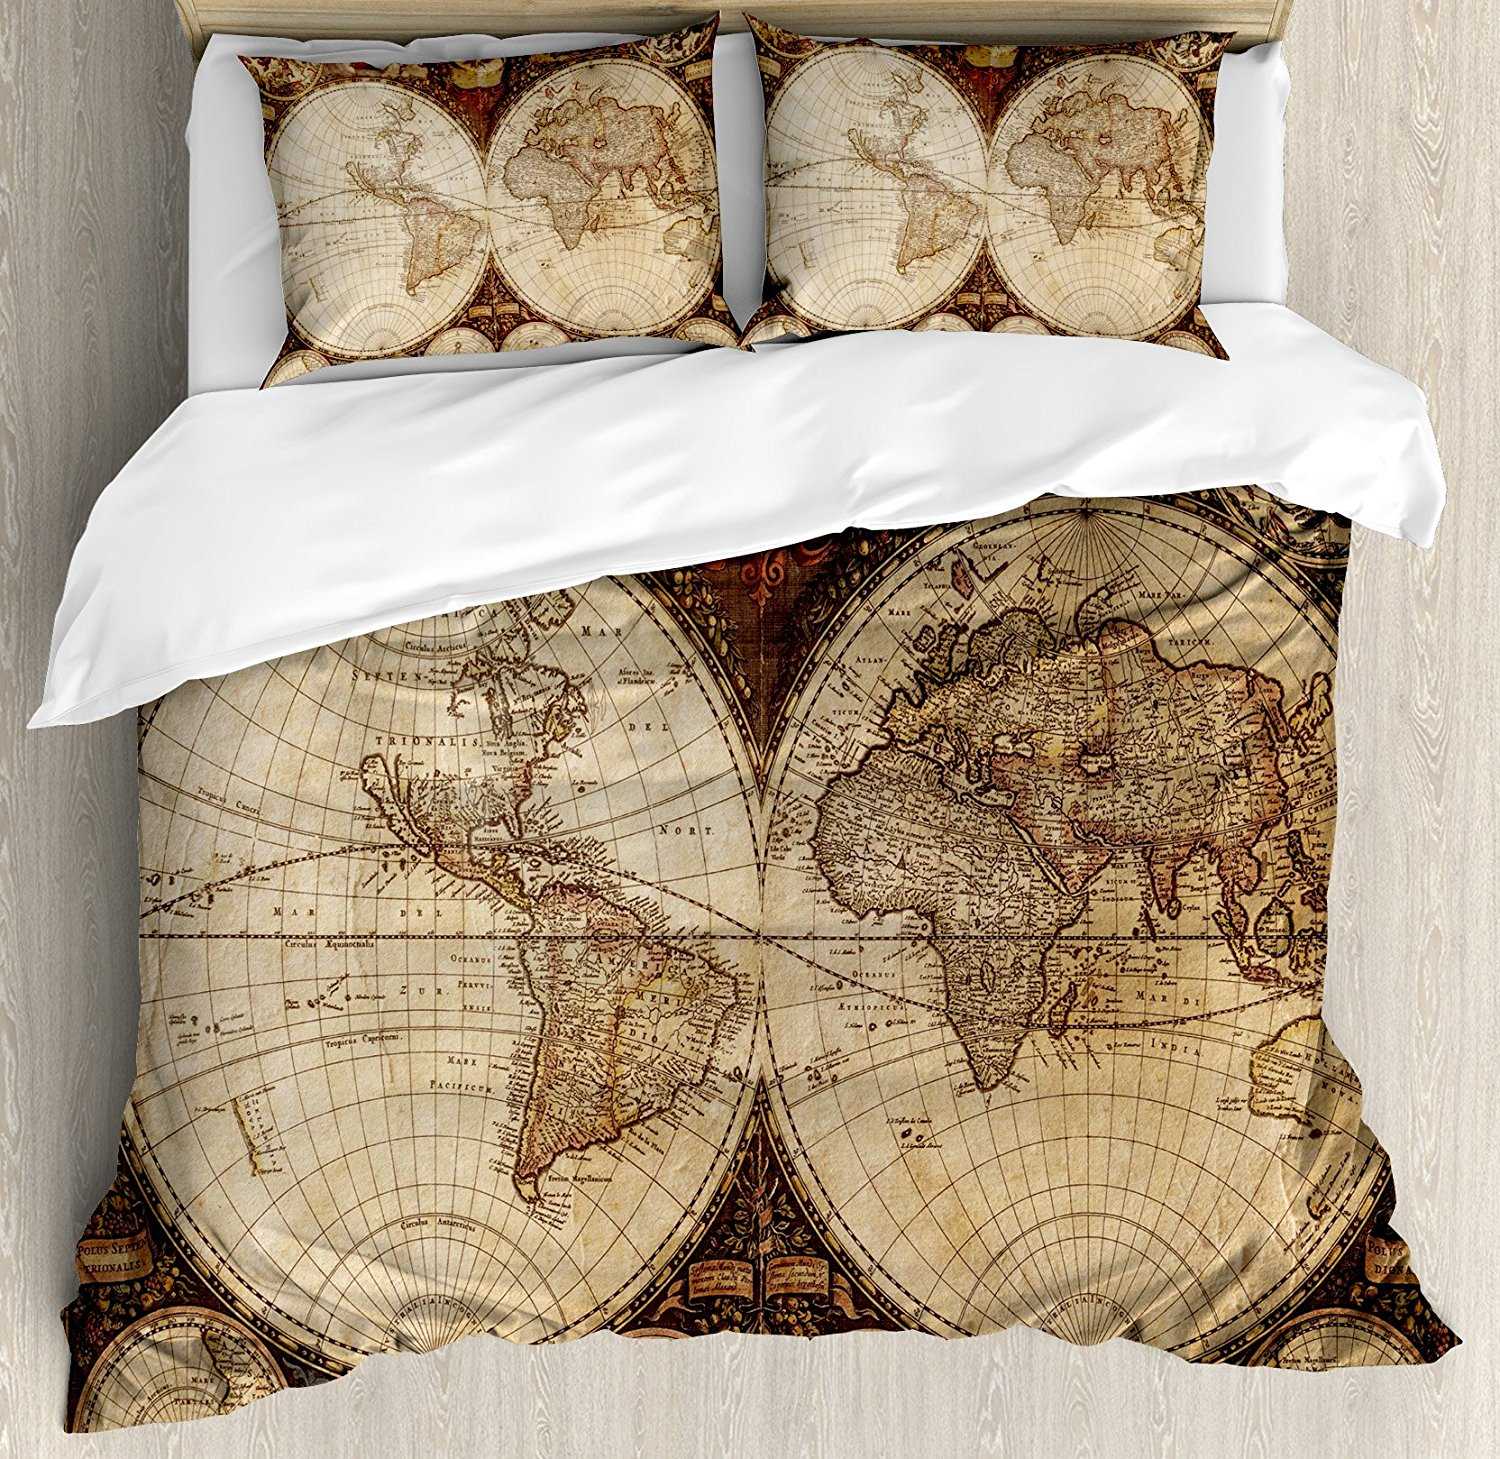 Buy map duvet cover and get free shipping on aliexpress gumiabroncs Image collections